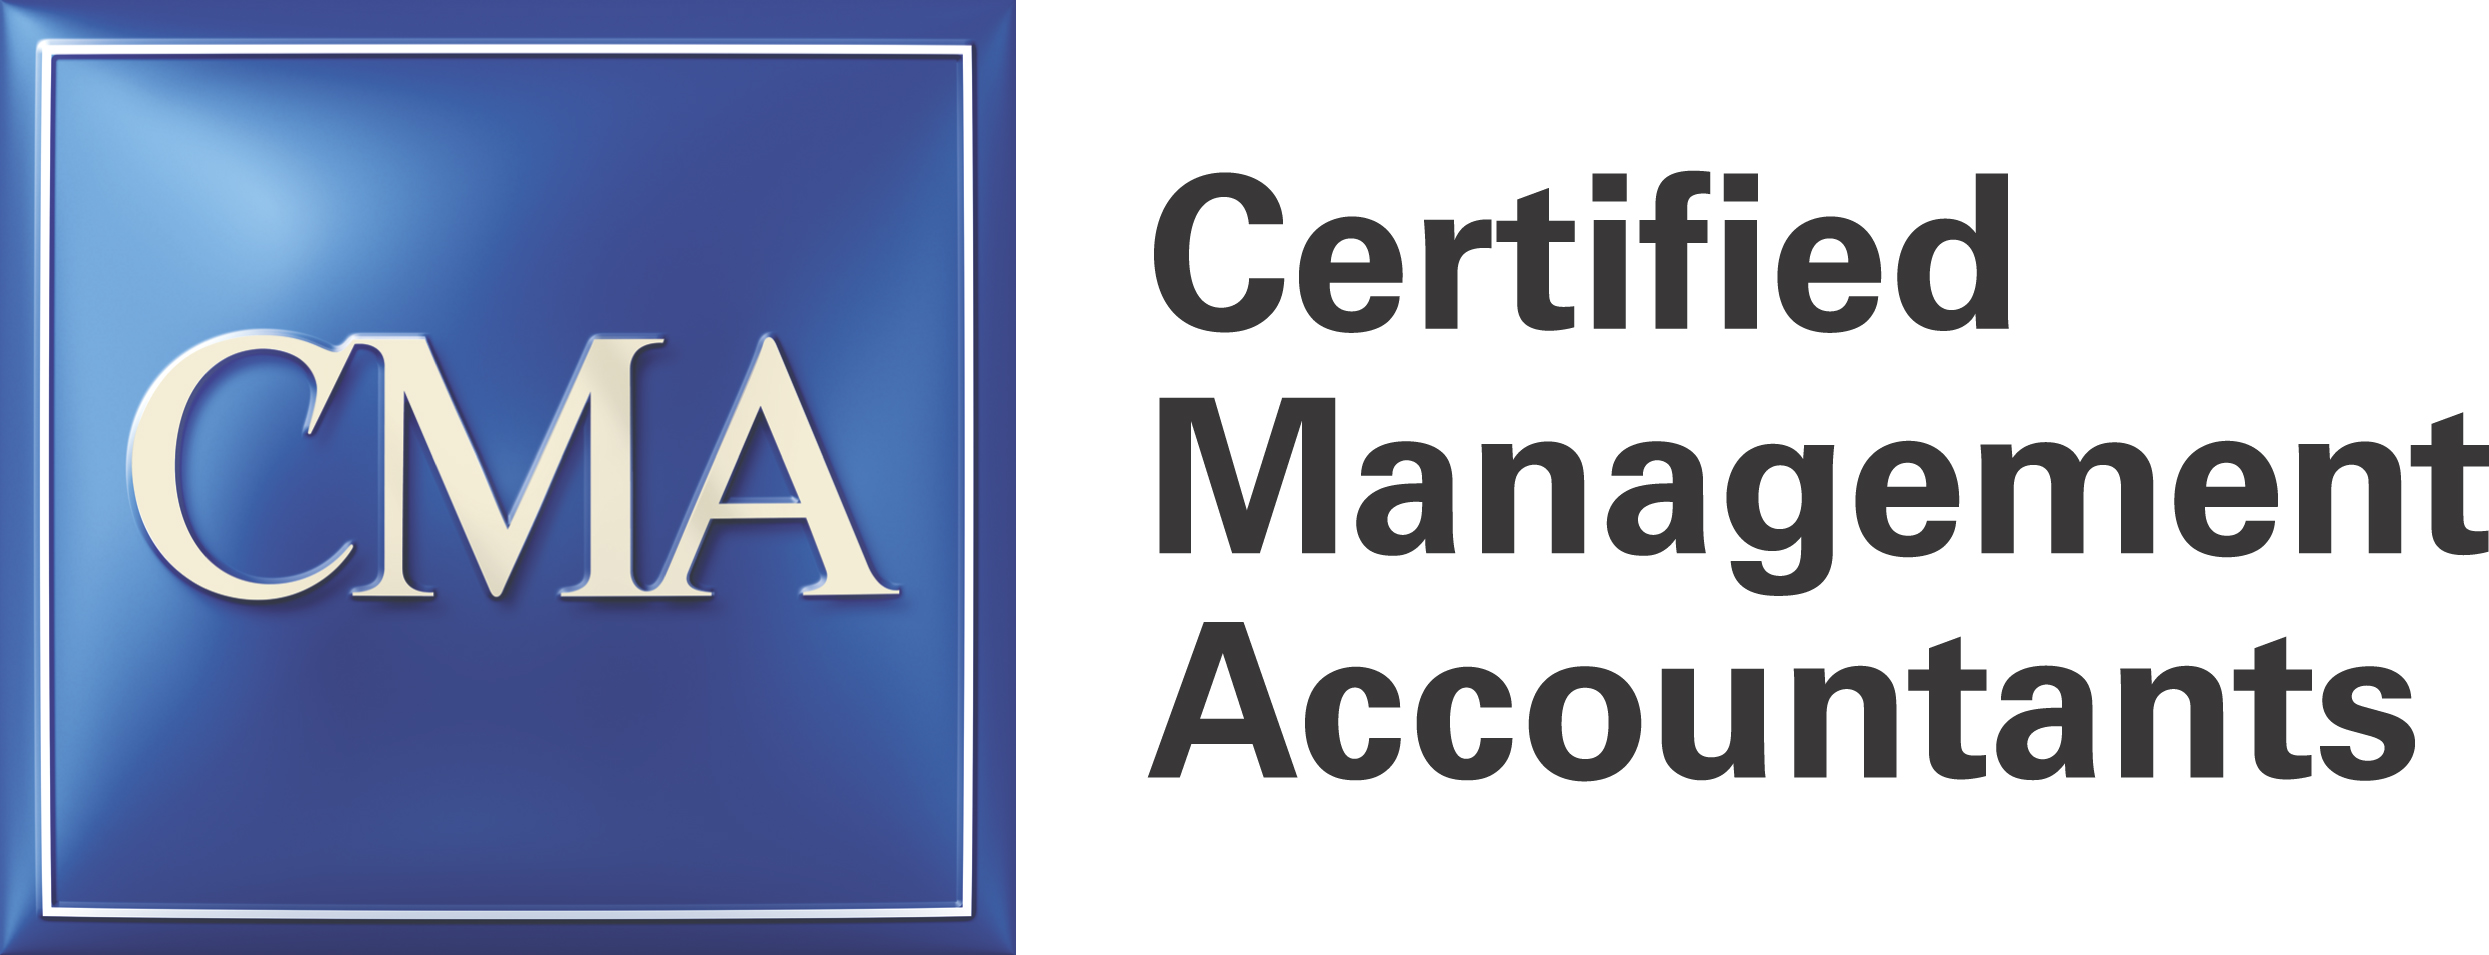 What is CMA Certification?